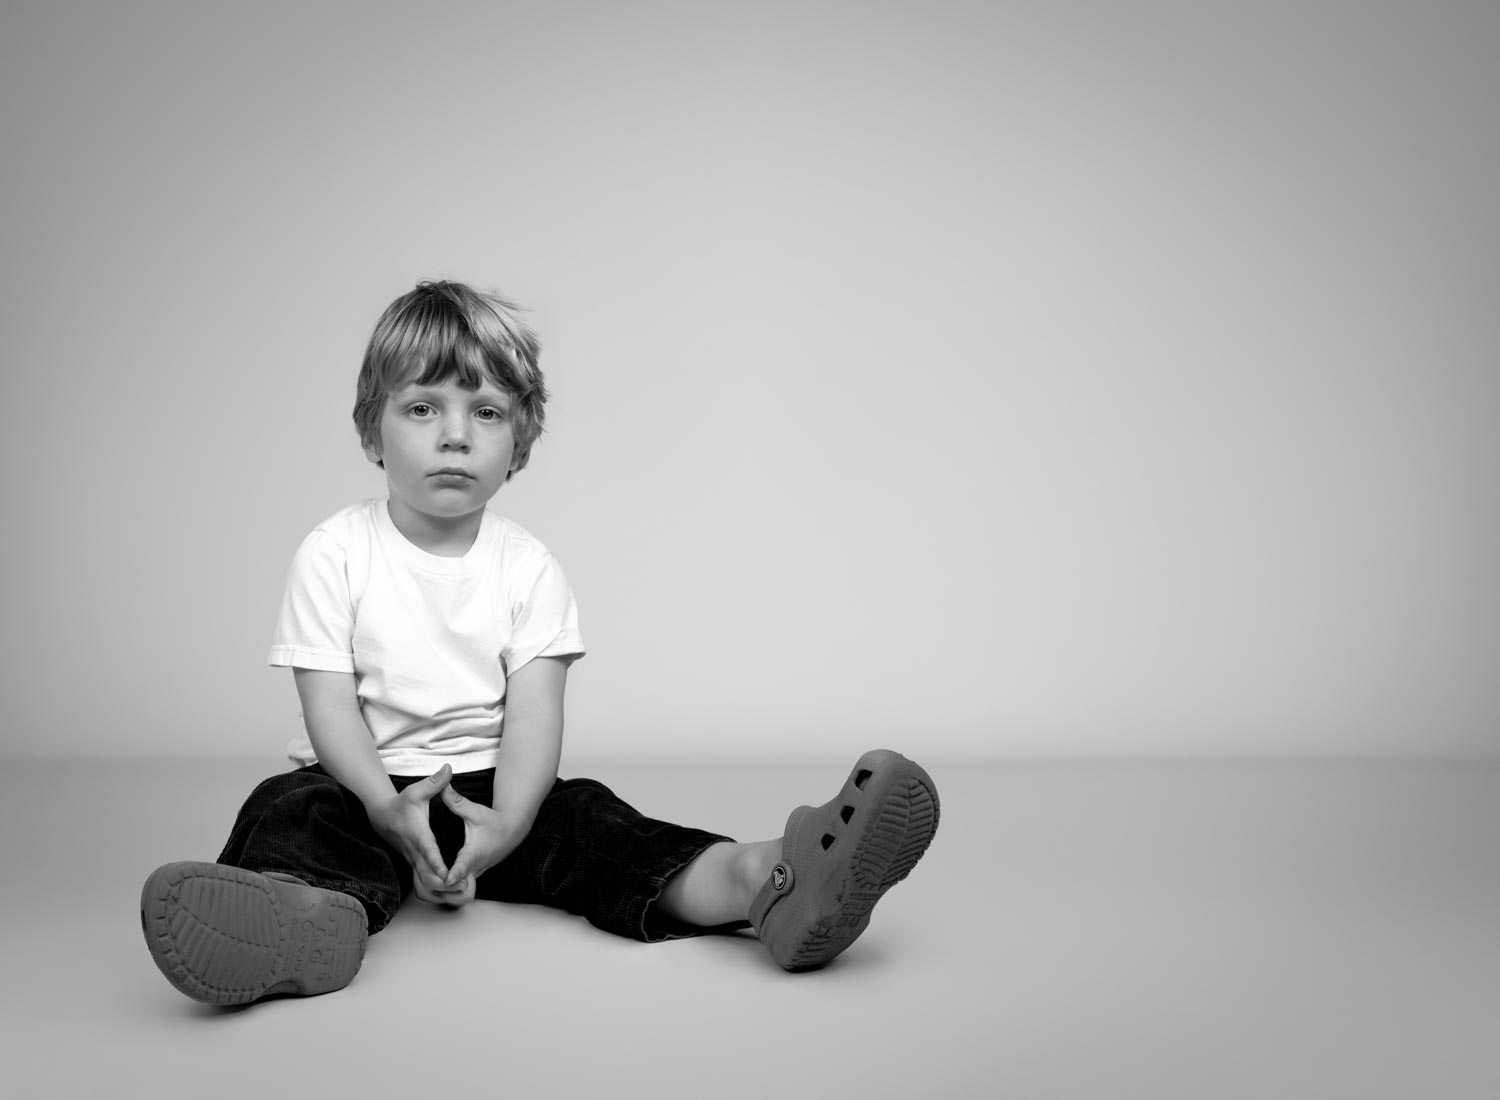 Black and white portrait of boy wearing crocs